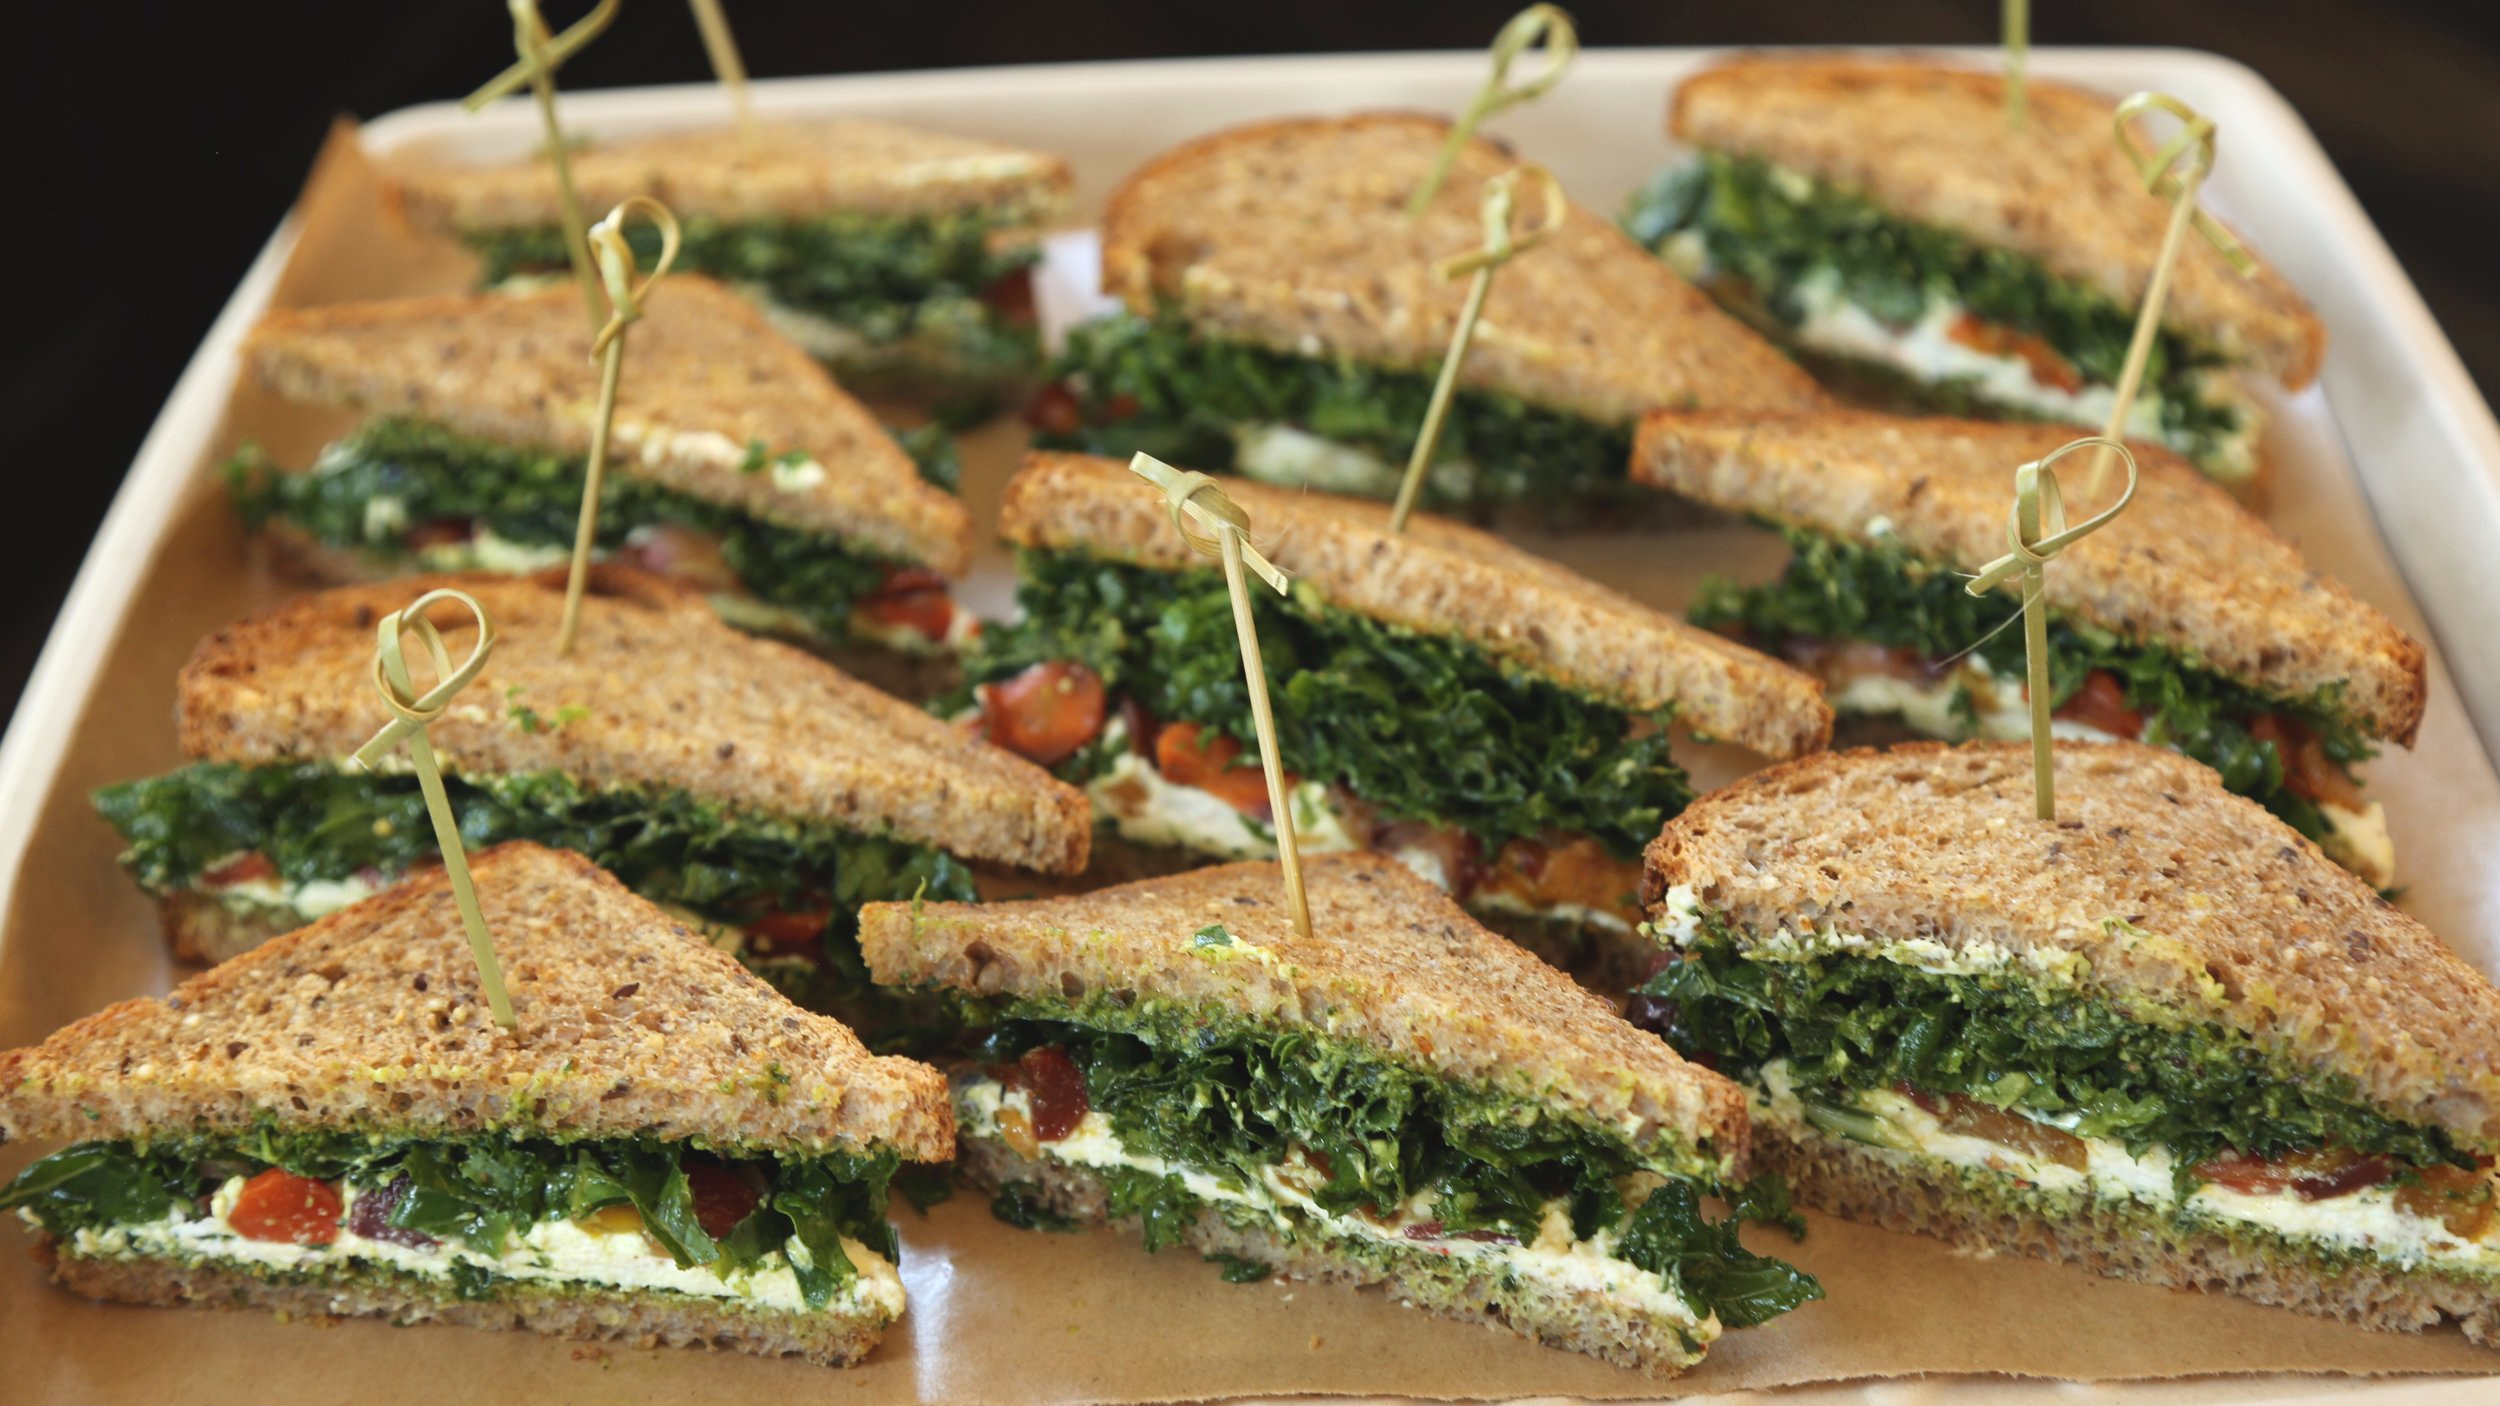 Ricotta and pesto sandwich platter